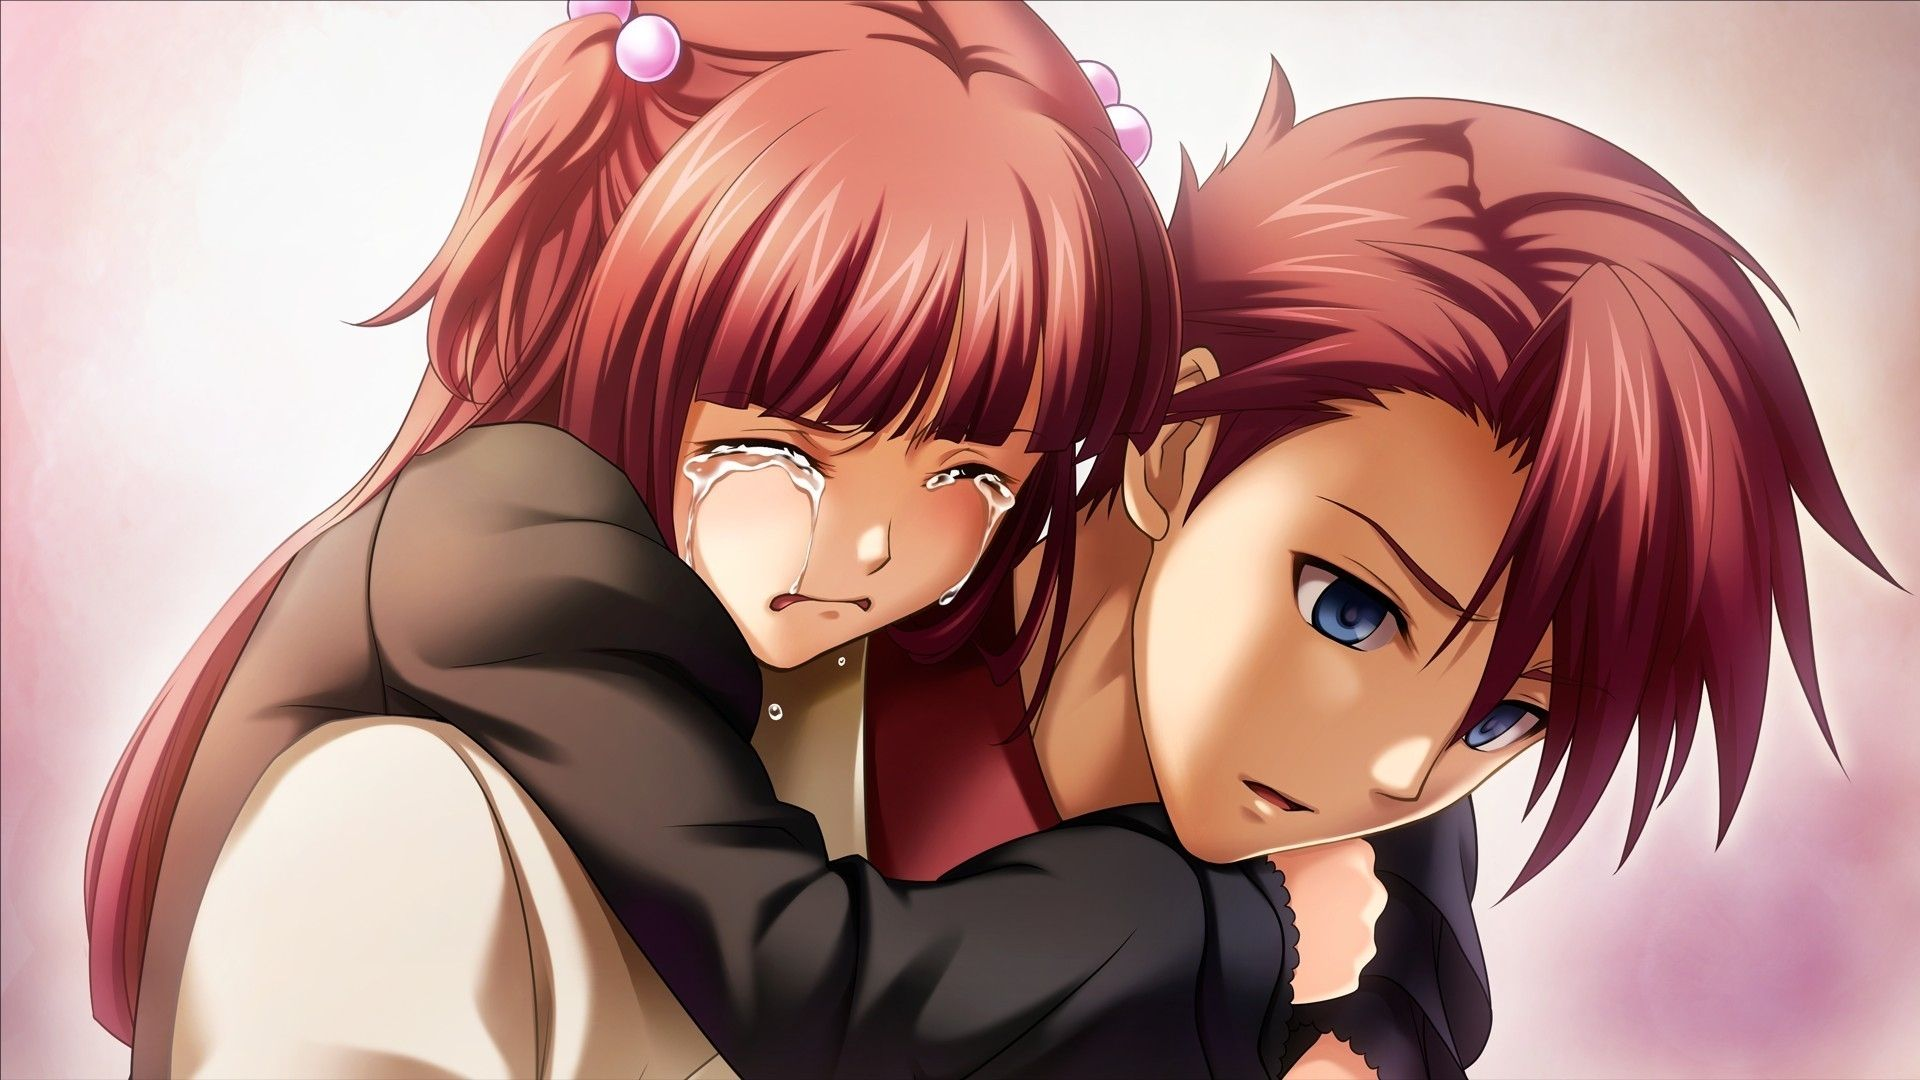 Pin on Umineko